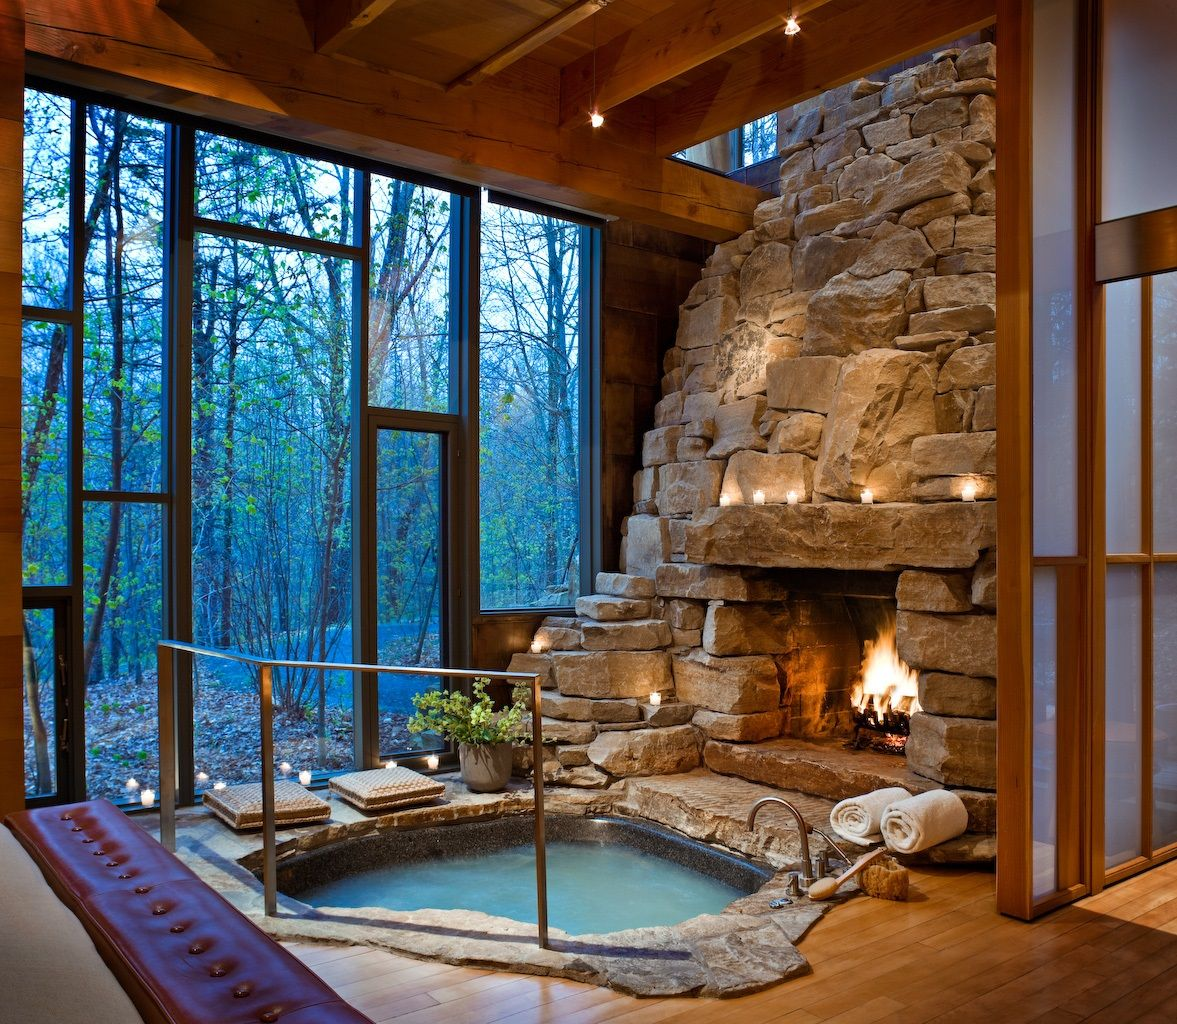 Twin Farms One Of The Most Exquisite Resorts In Indoor Hot Tub Dream House My Dream Home